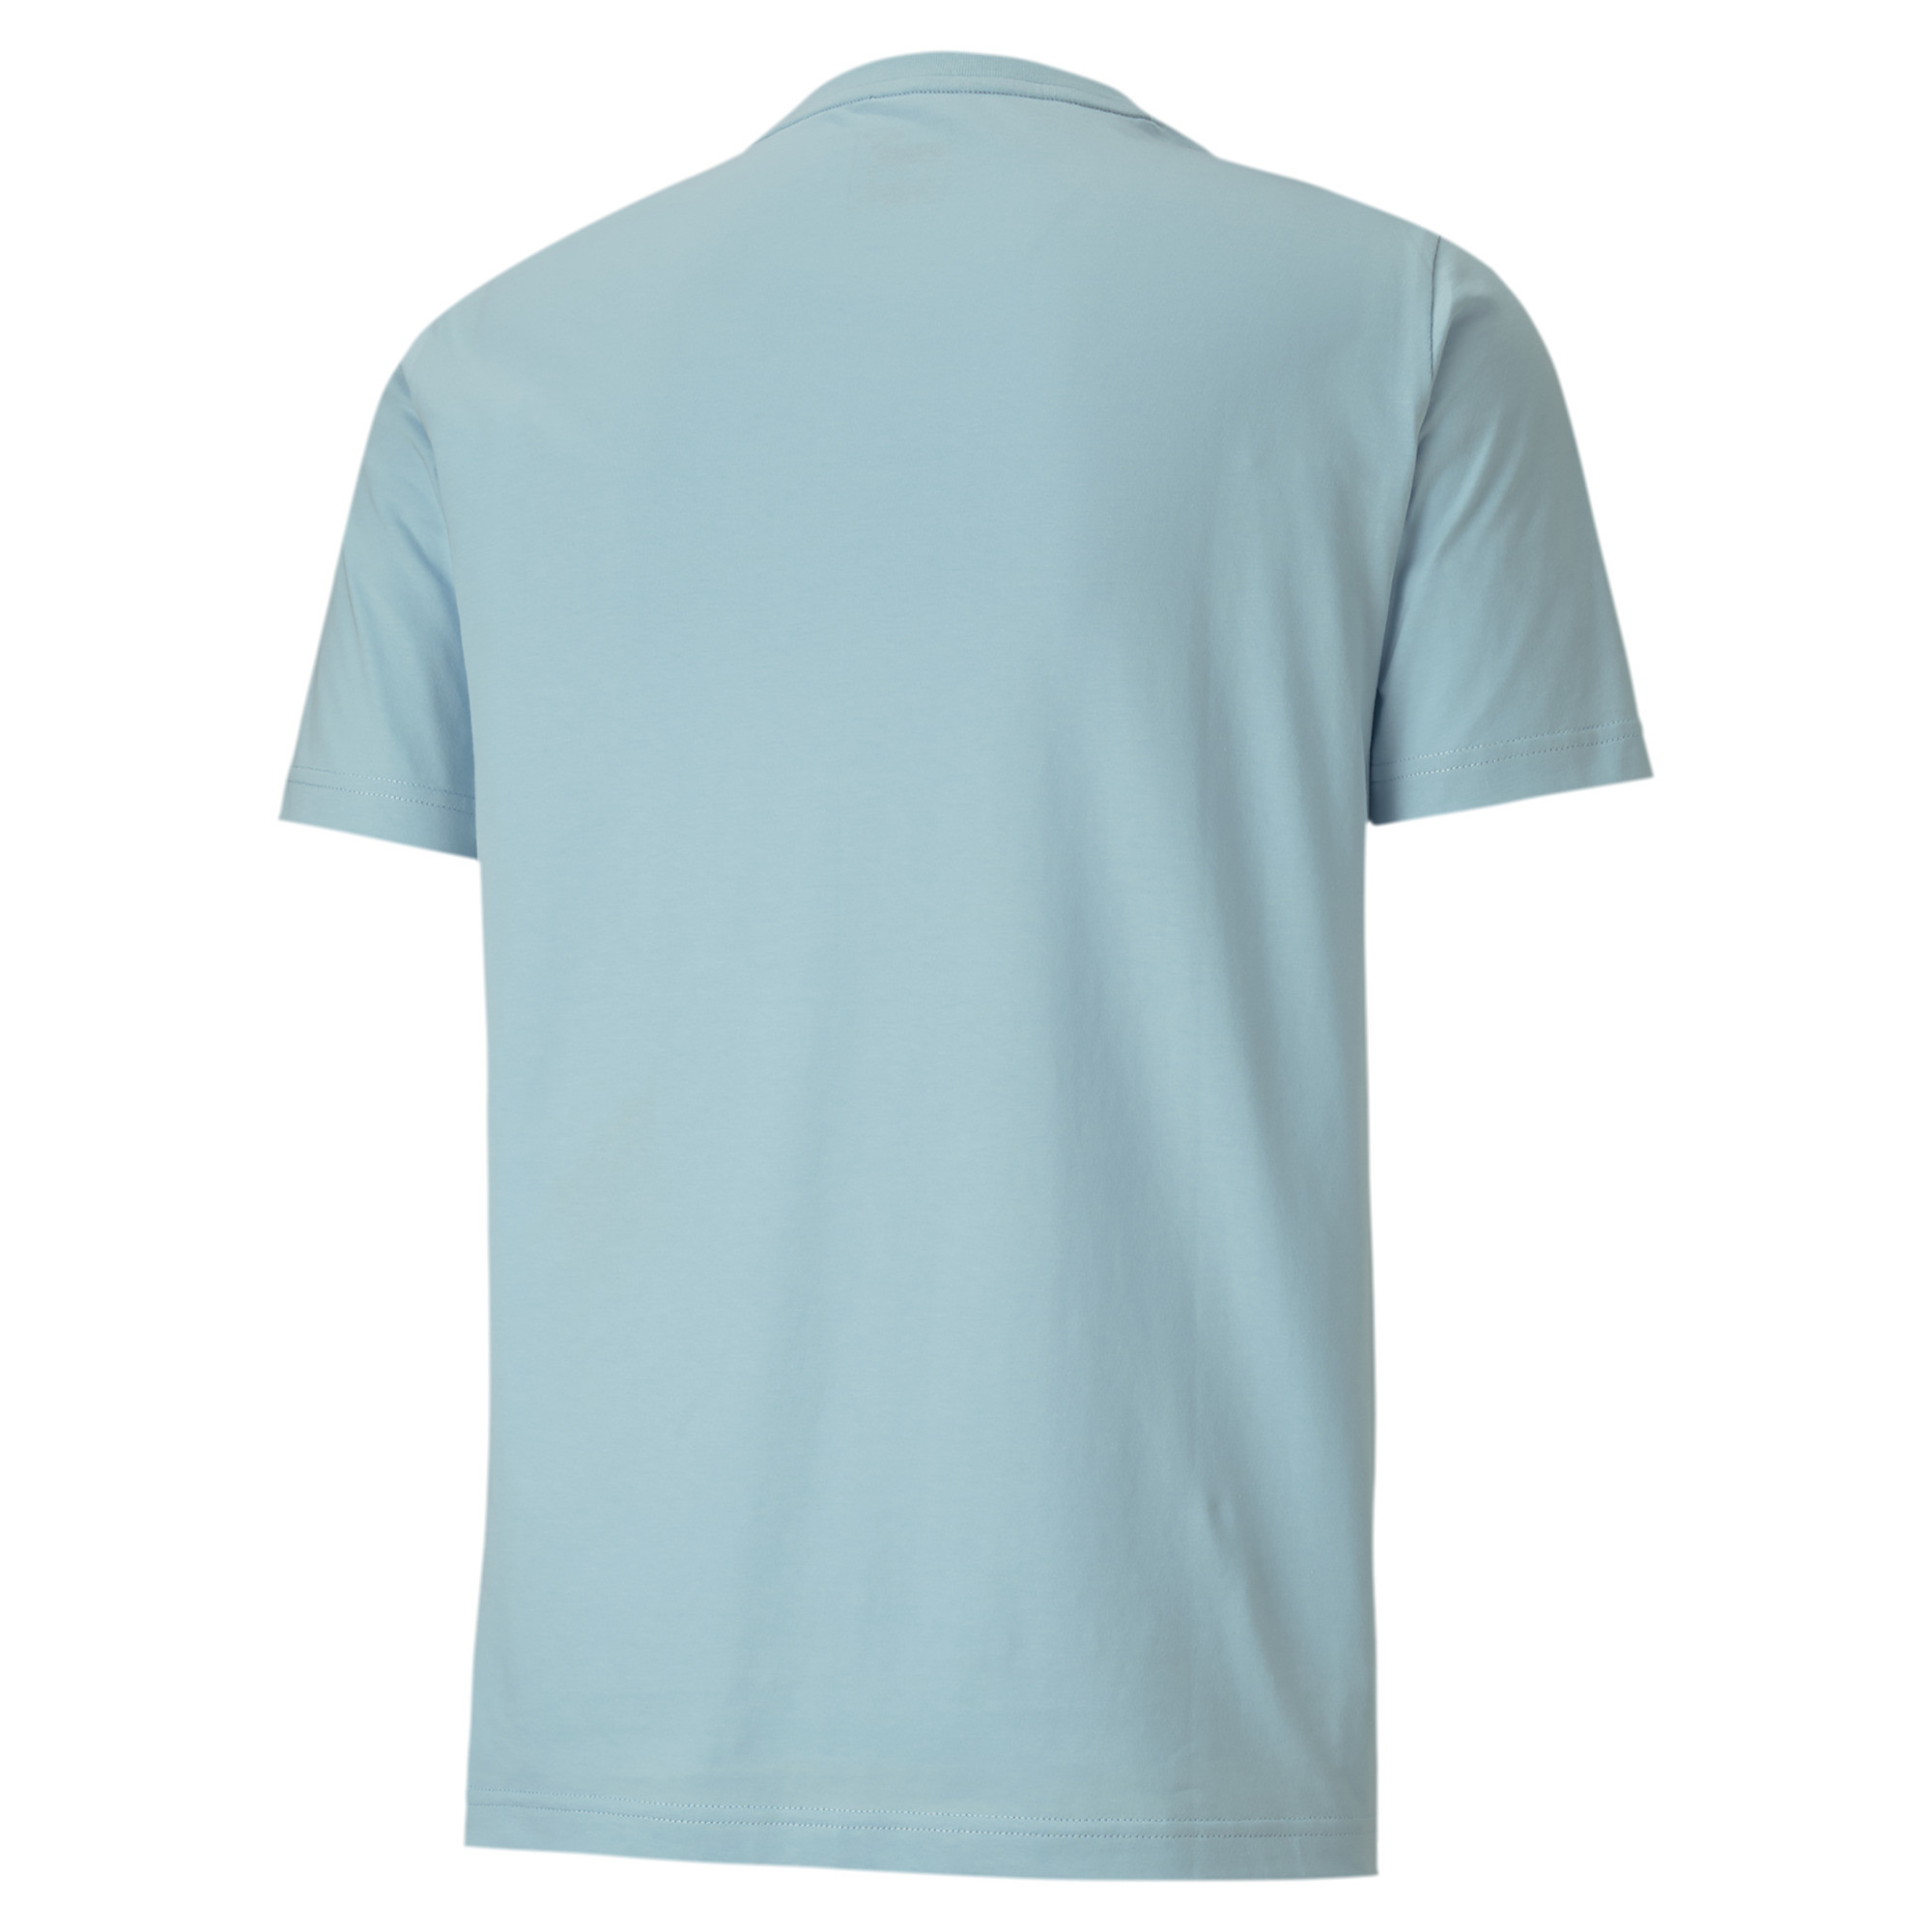 PUMA-Amplified-Men-039-s-Tee-Men-Tee-Basics thumbnail 23